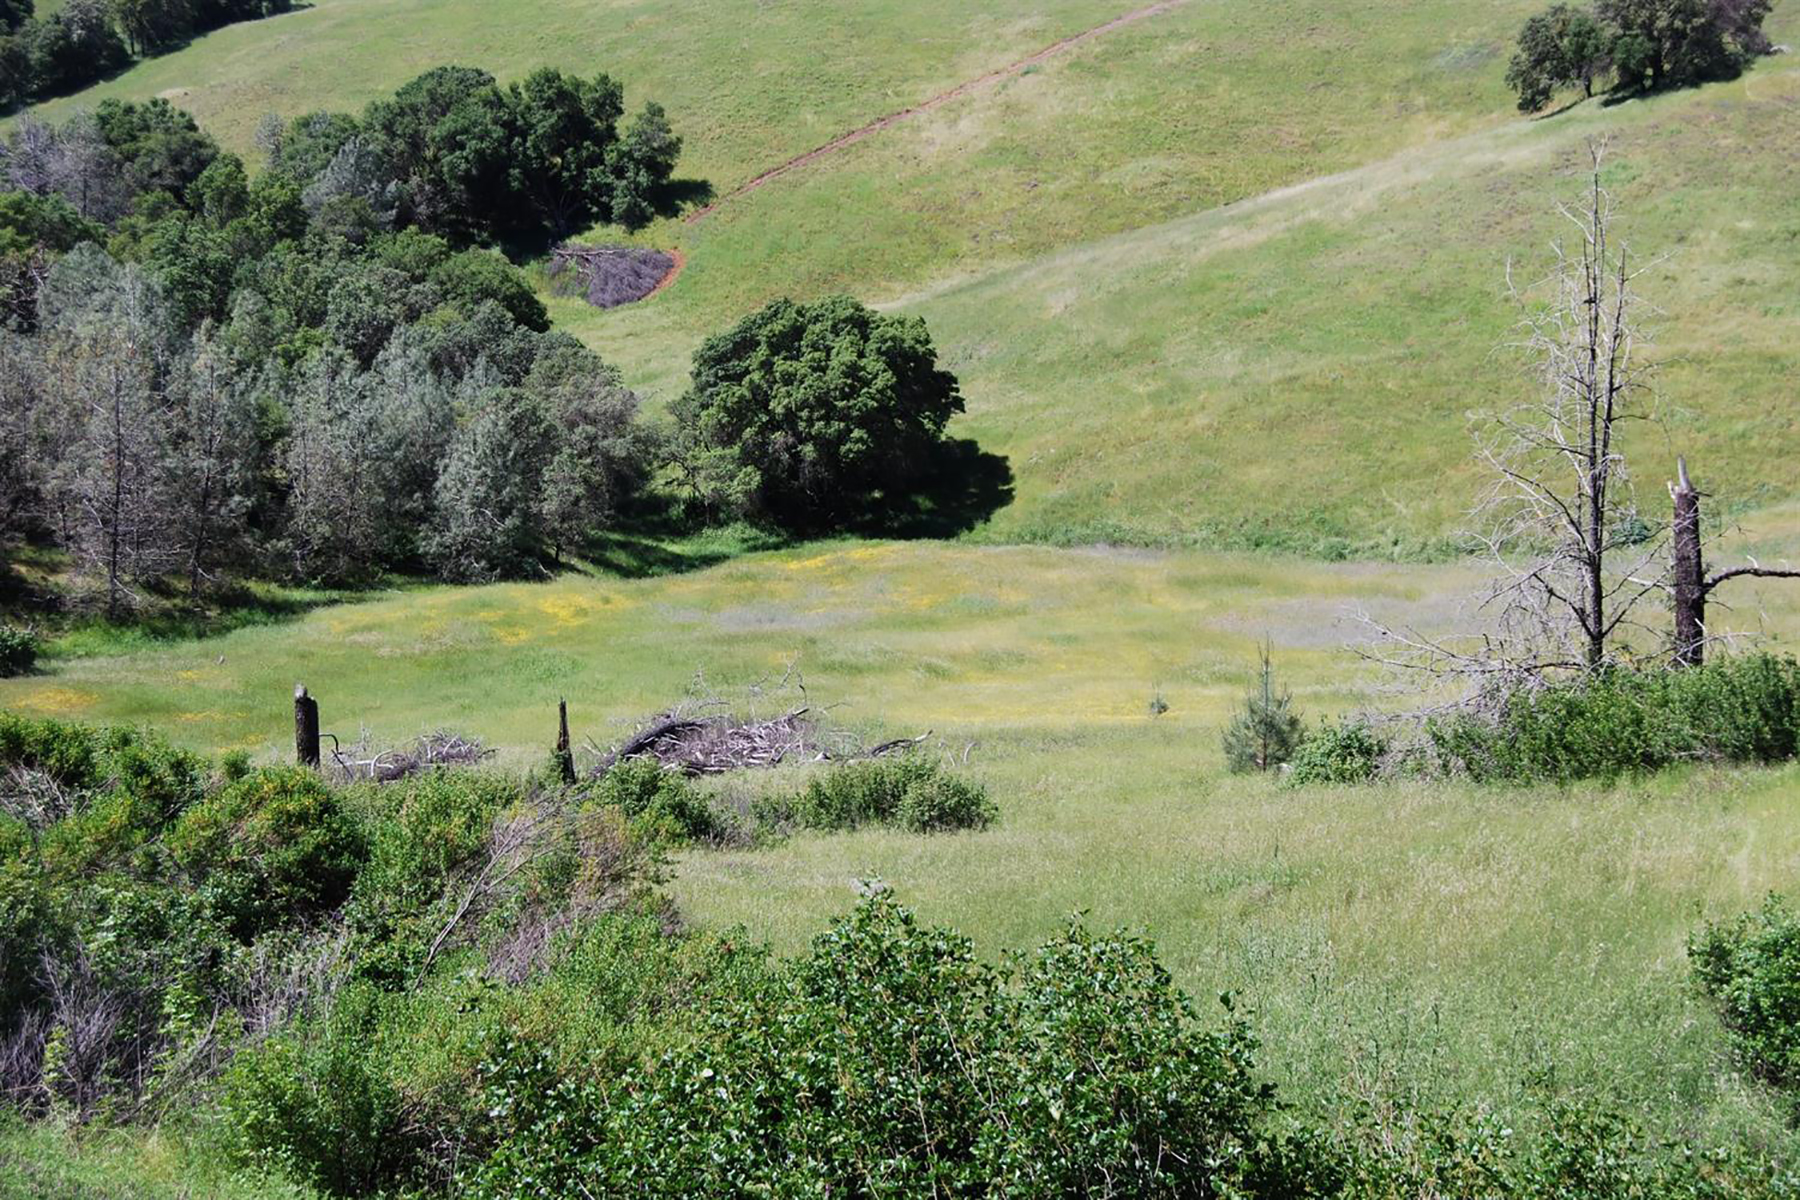 Land for Sale at 1661 Storksbill Rd, Pilot Hill, CA 95664 1661 Storksbill Rd Pilot Hill, California 95664 United States